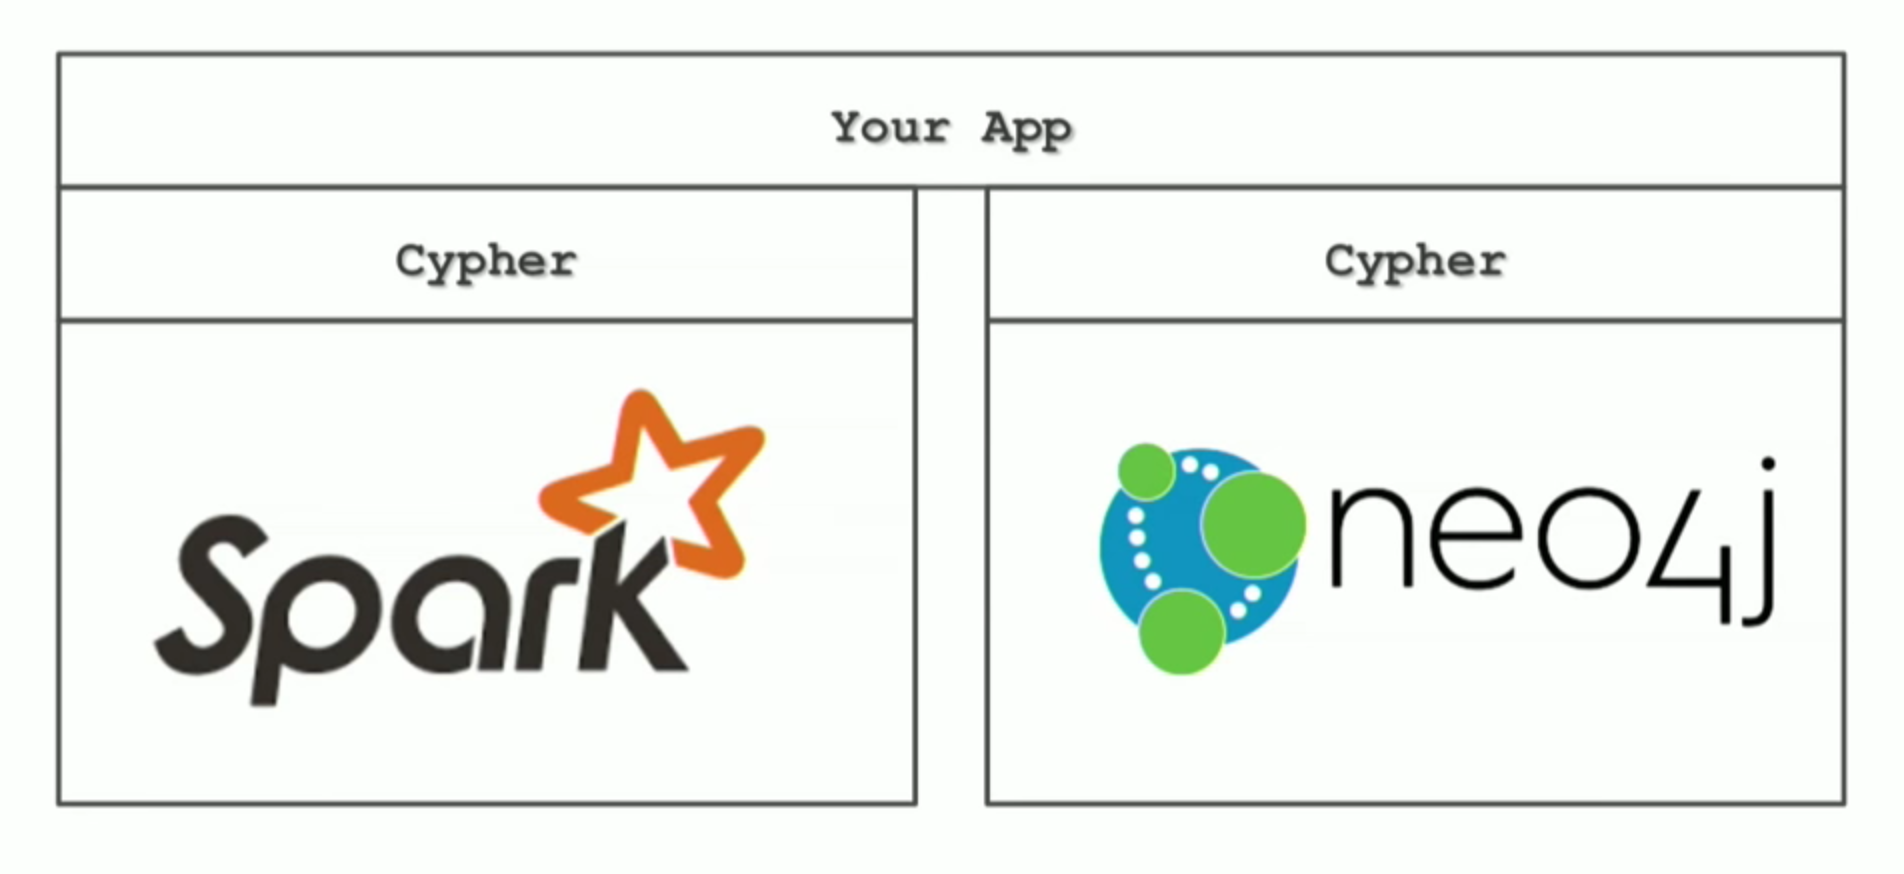 Cypher for both Apache Spark and Neo4j